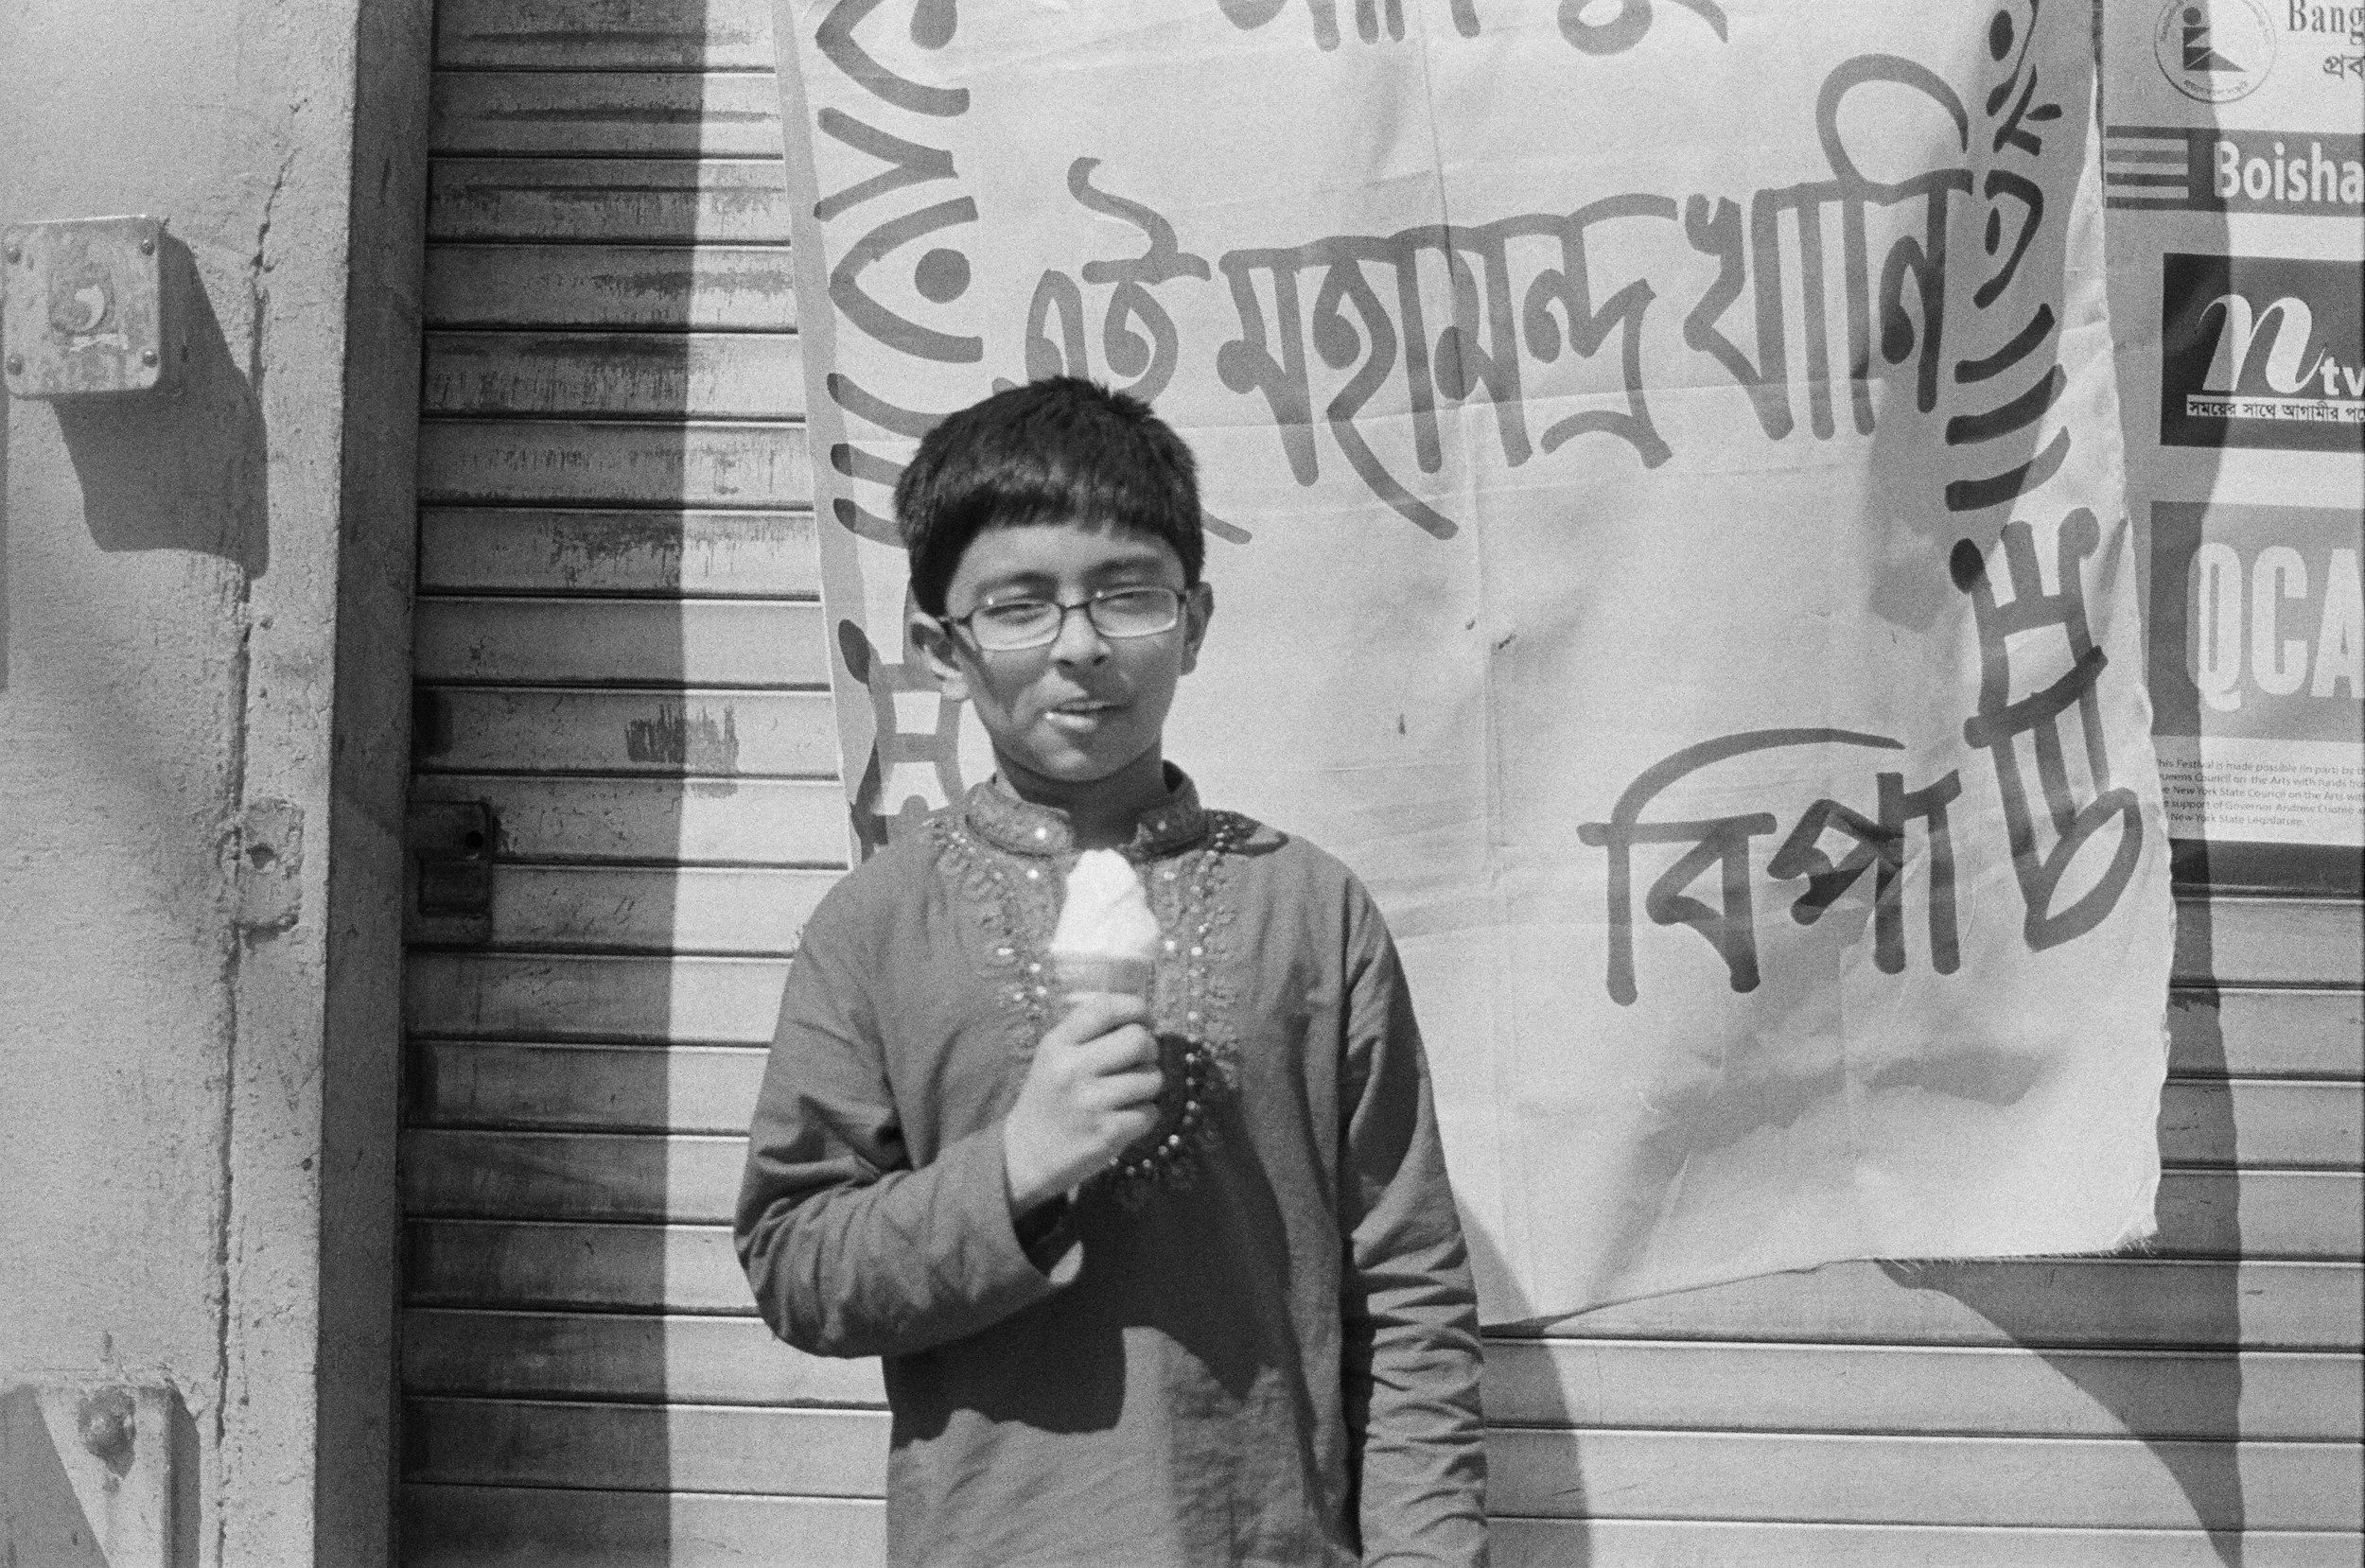 A young boy eats an ice cream cone during a Bengali day celebration.